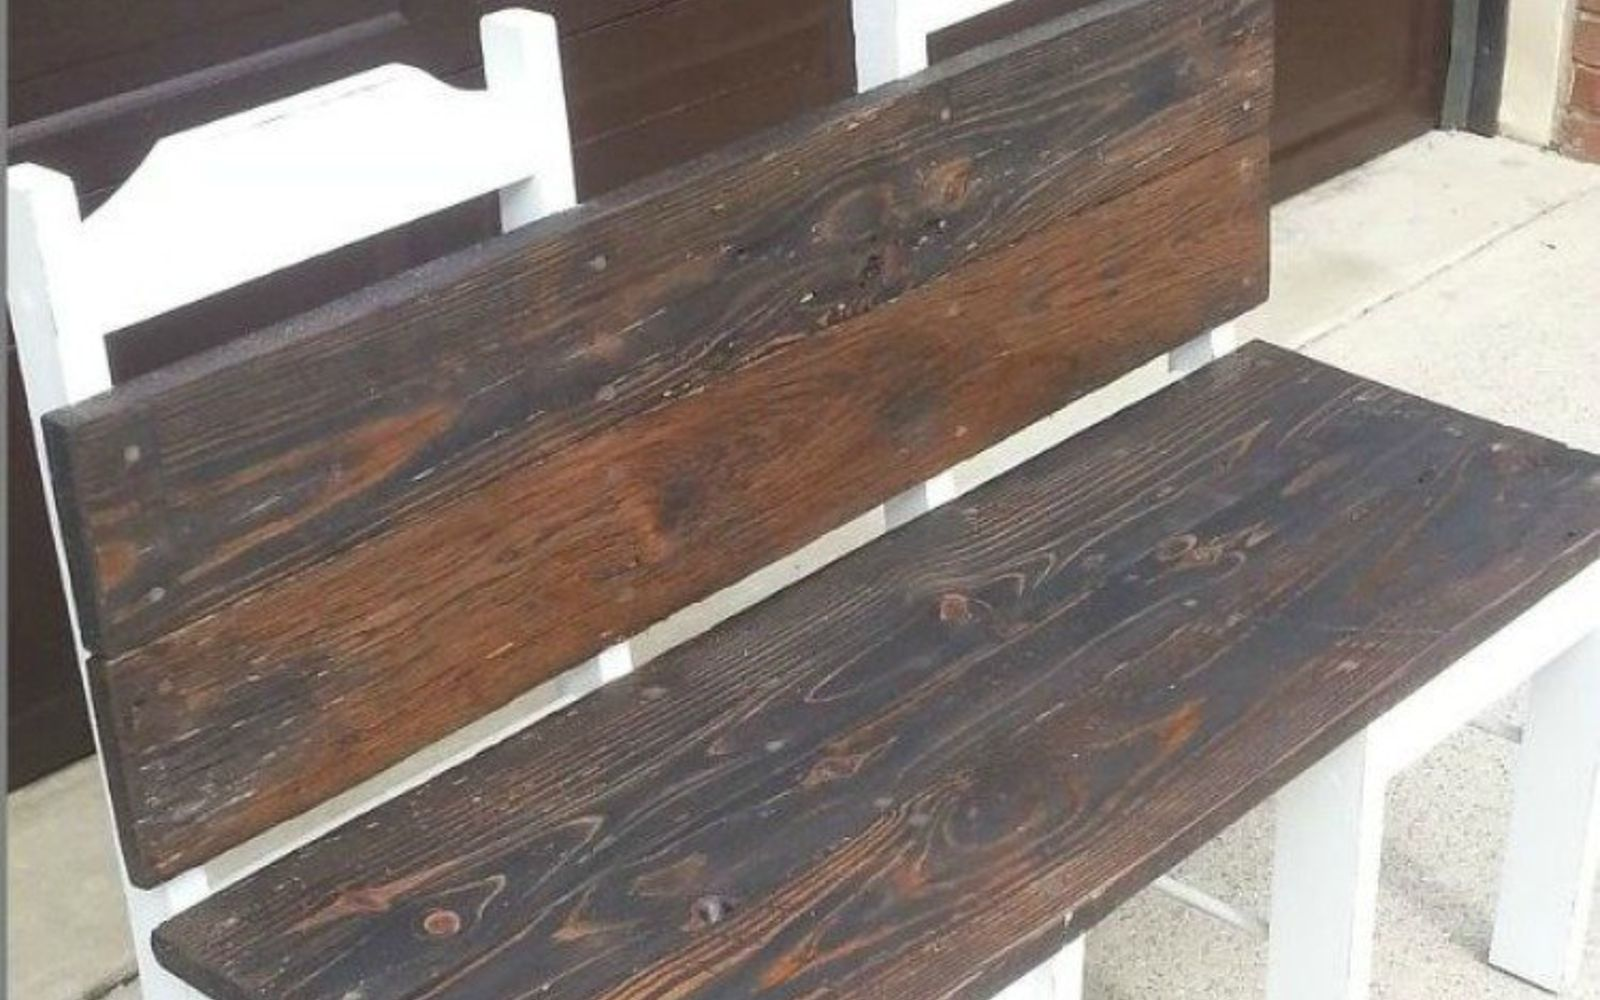 s 10 surprising ways to turn old furniture into extra seating, painted furniture, After A classy wooden bench